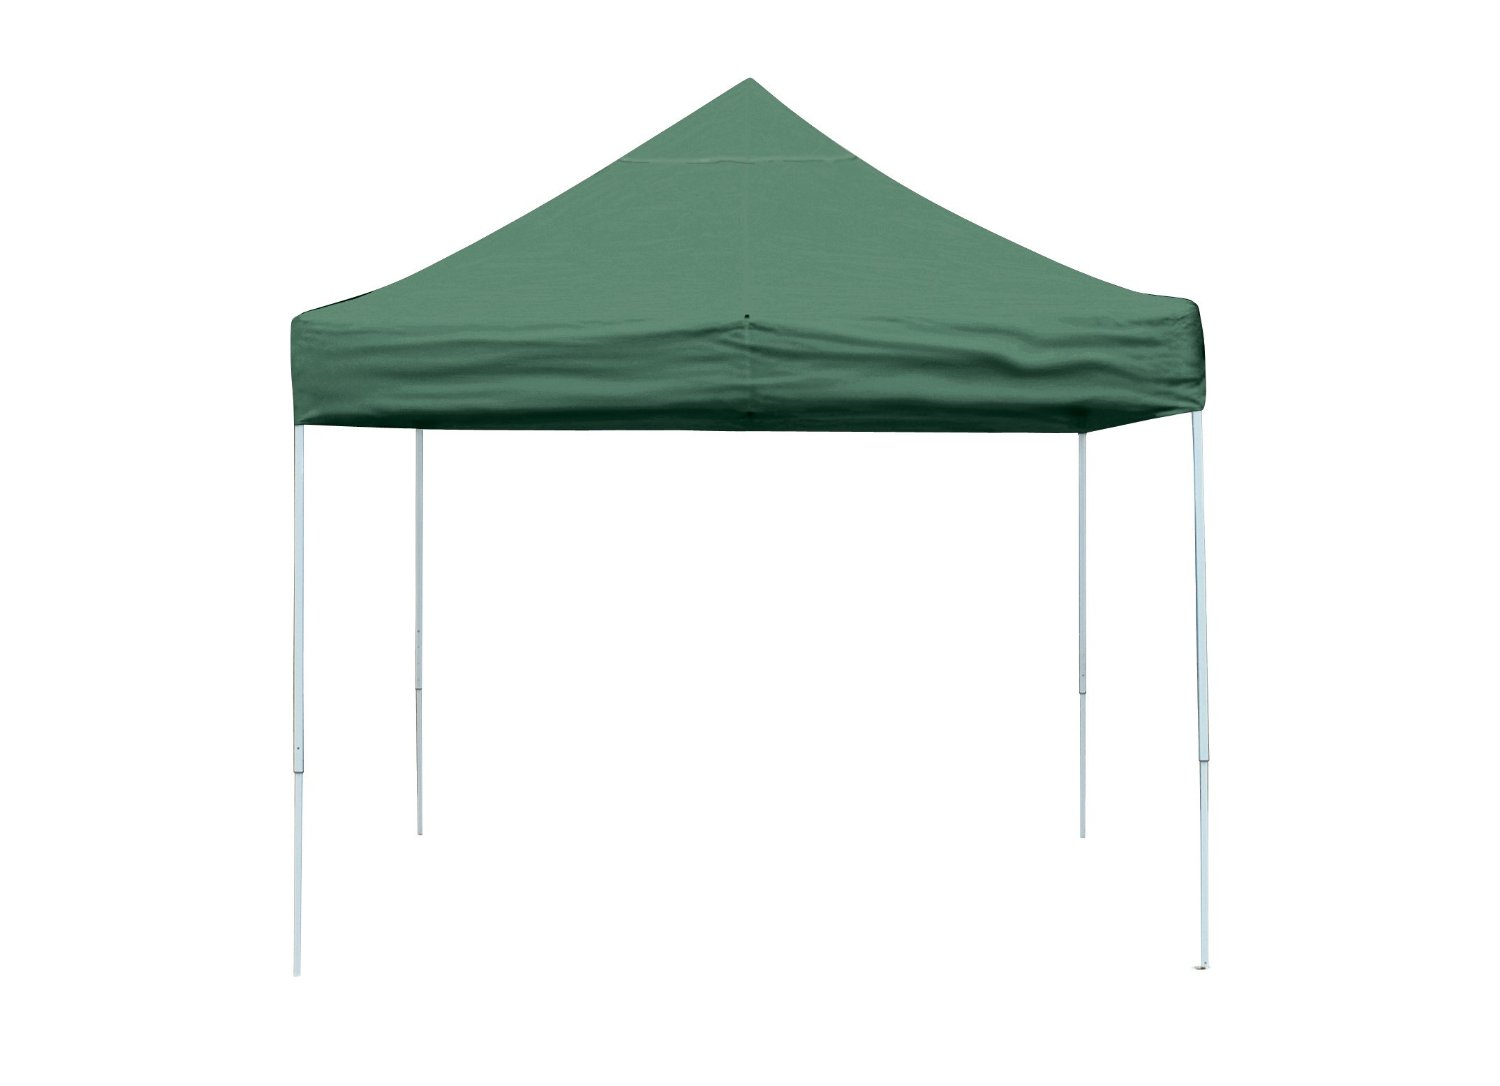 Straight Leg Popup Canopy, 12'x12', Green Cover, Black Roller Bag